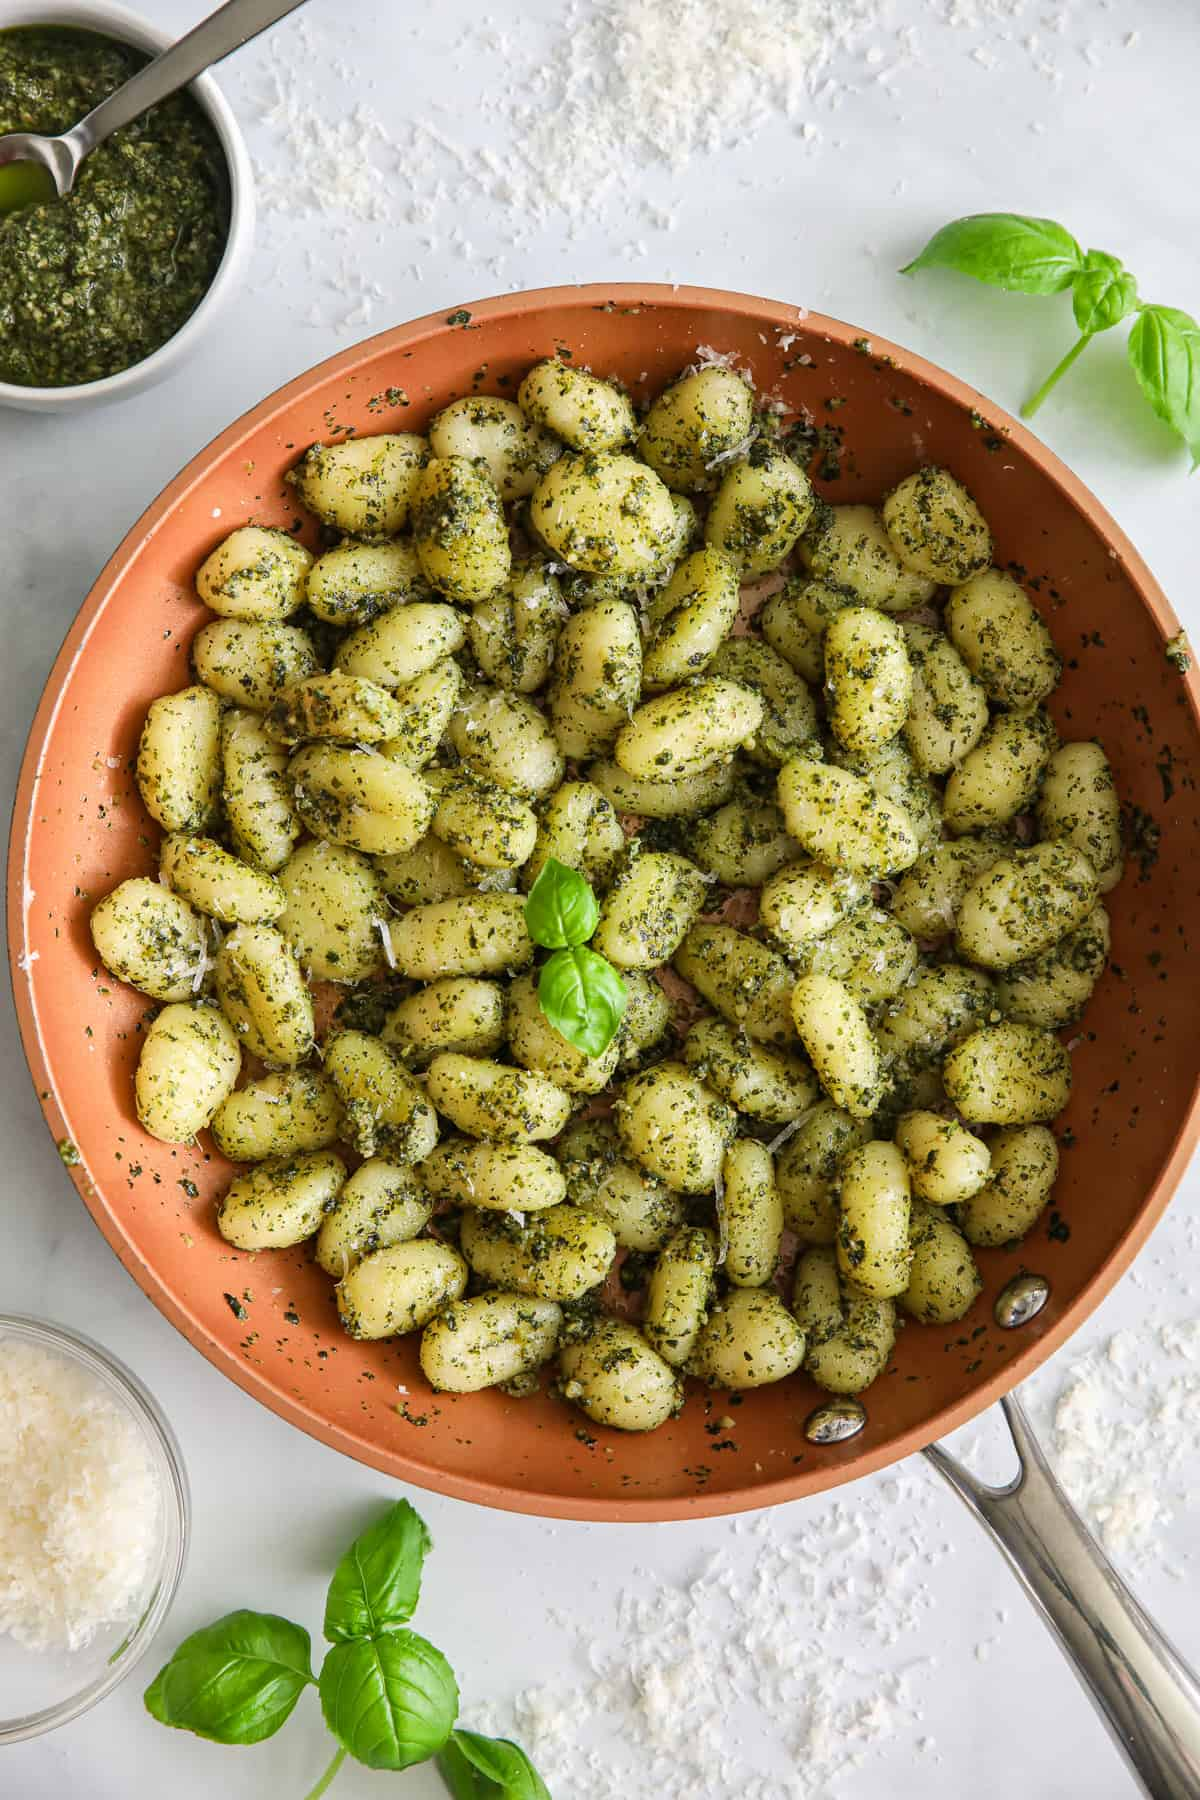 Pan of Pesto Gnocchi with basil, Parmesan cheese, and a bowl of basil pesto on the side.